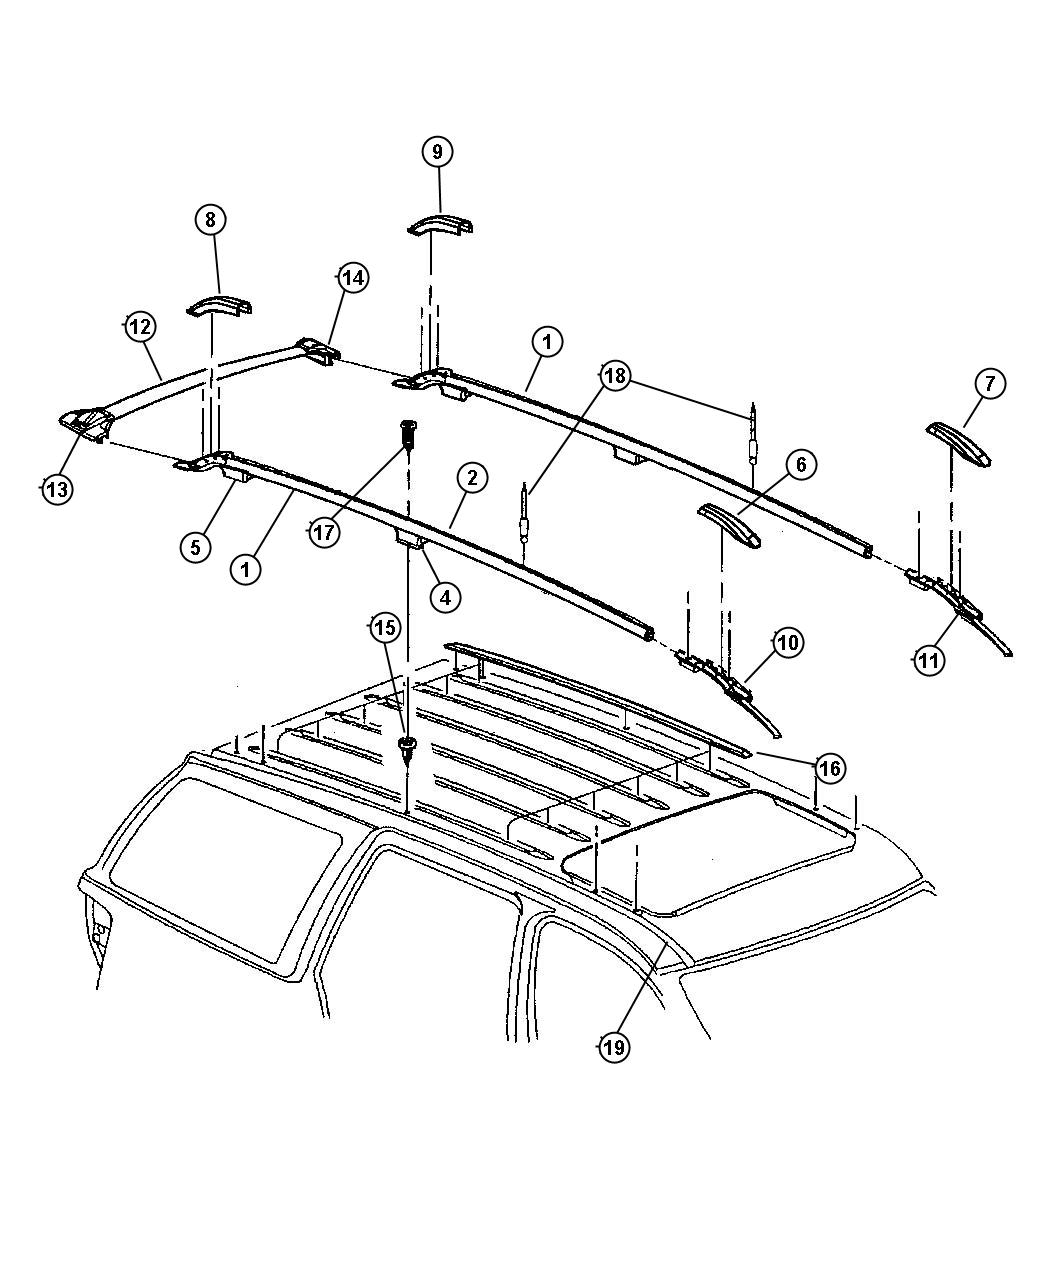 Jeep Grand Cherokee Rail  Luggage Rack Side  Right  Up To 11-30-98